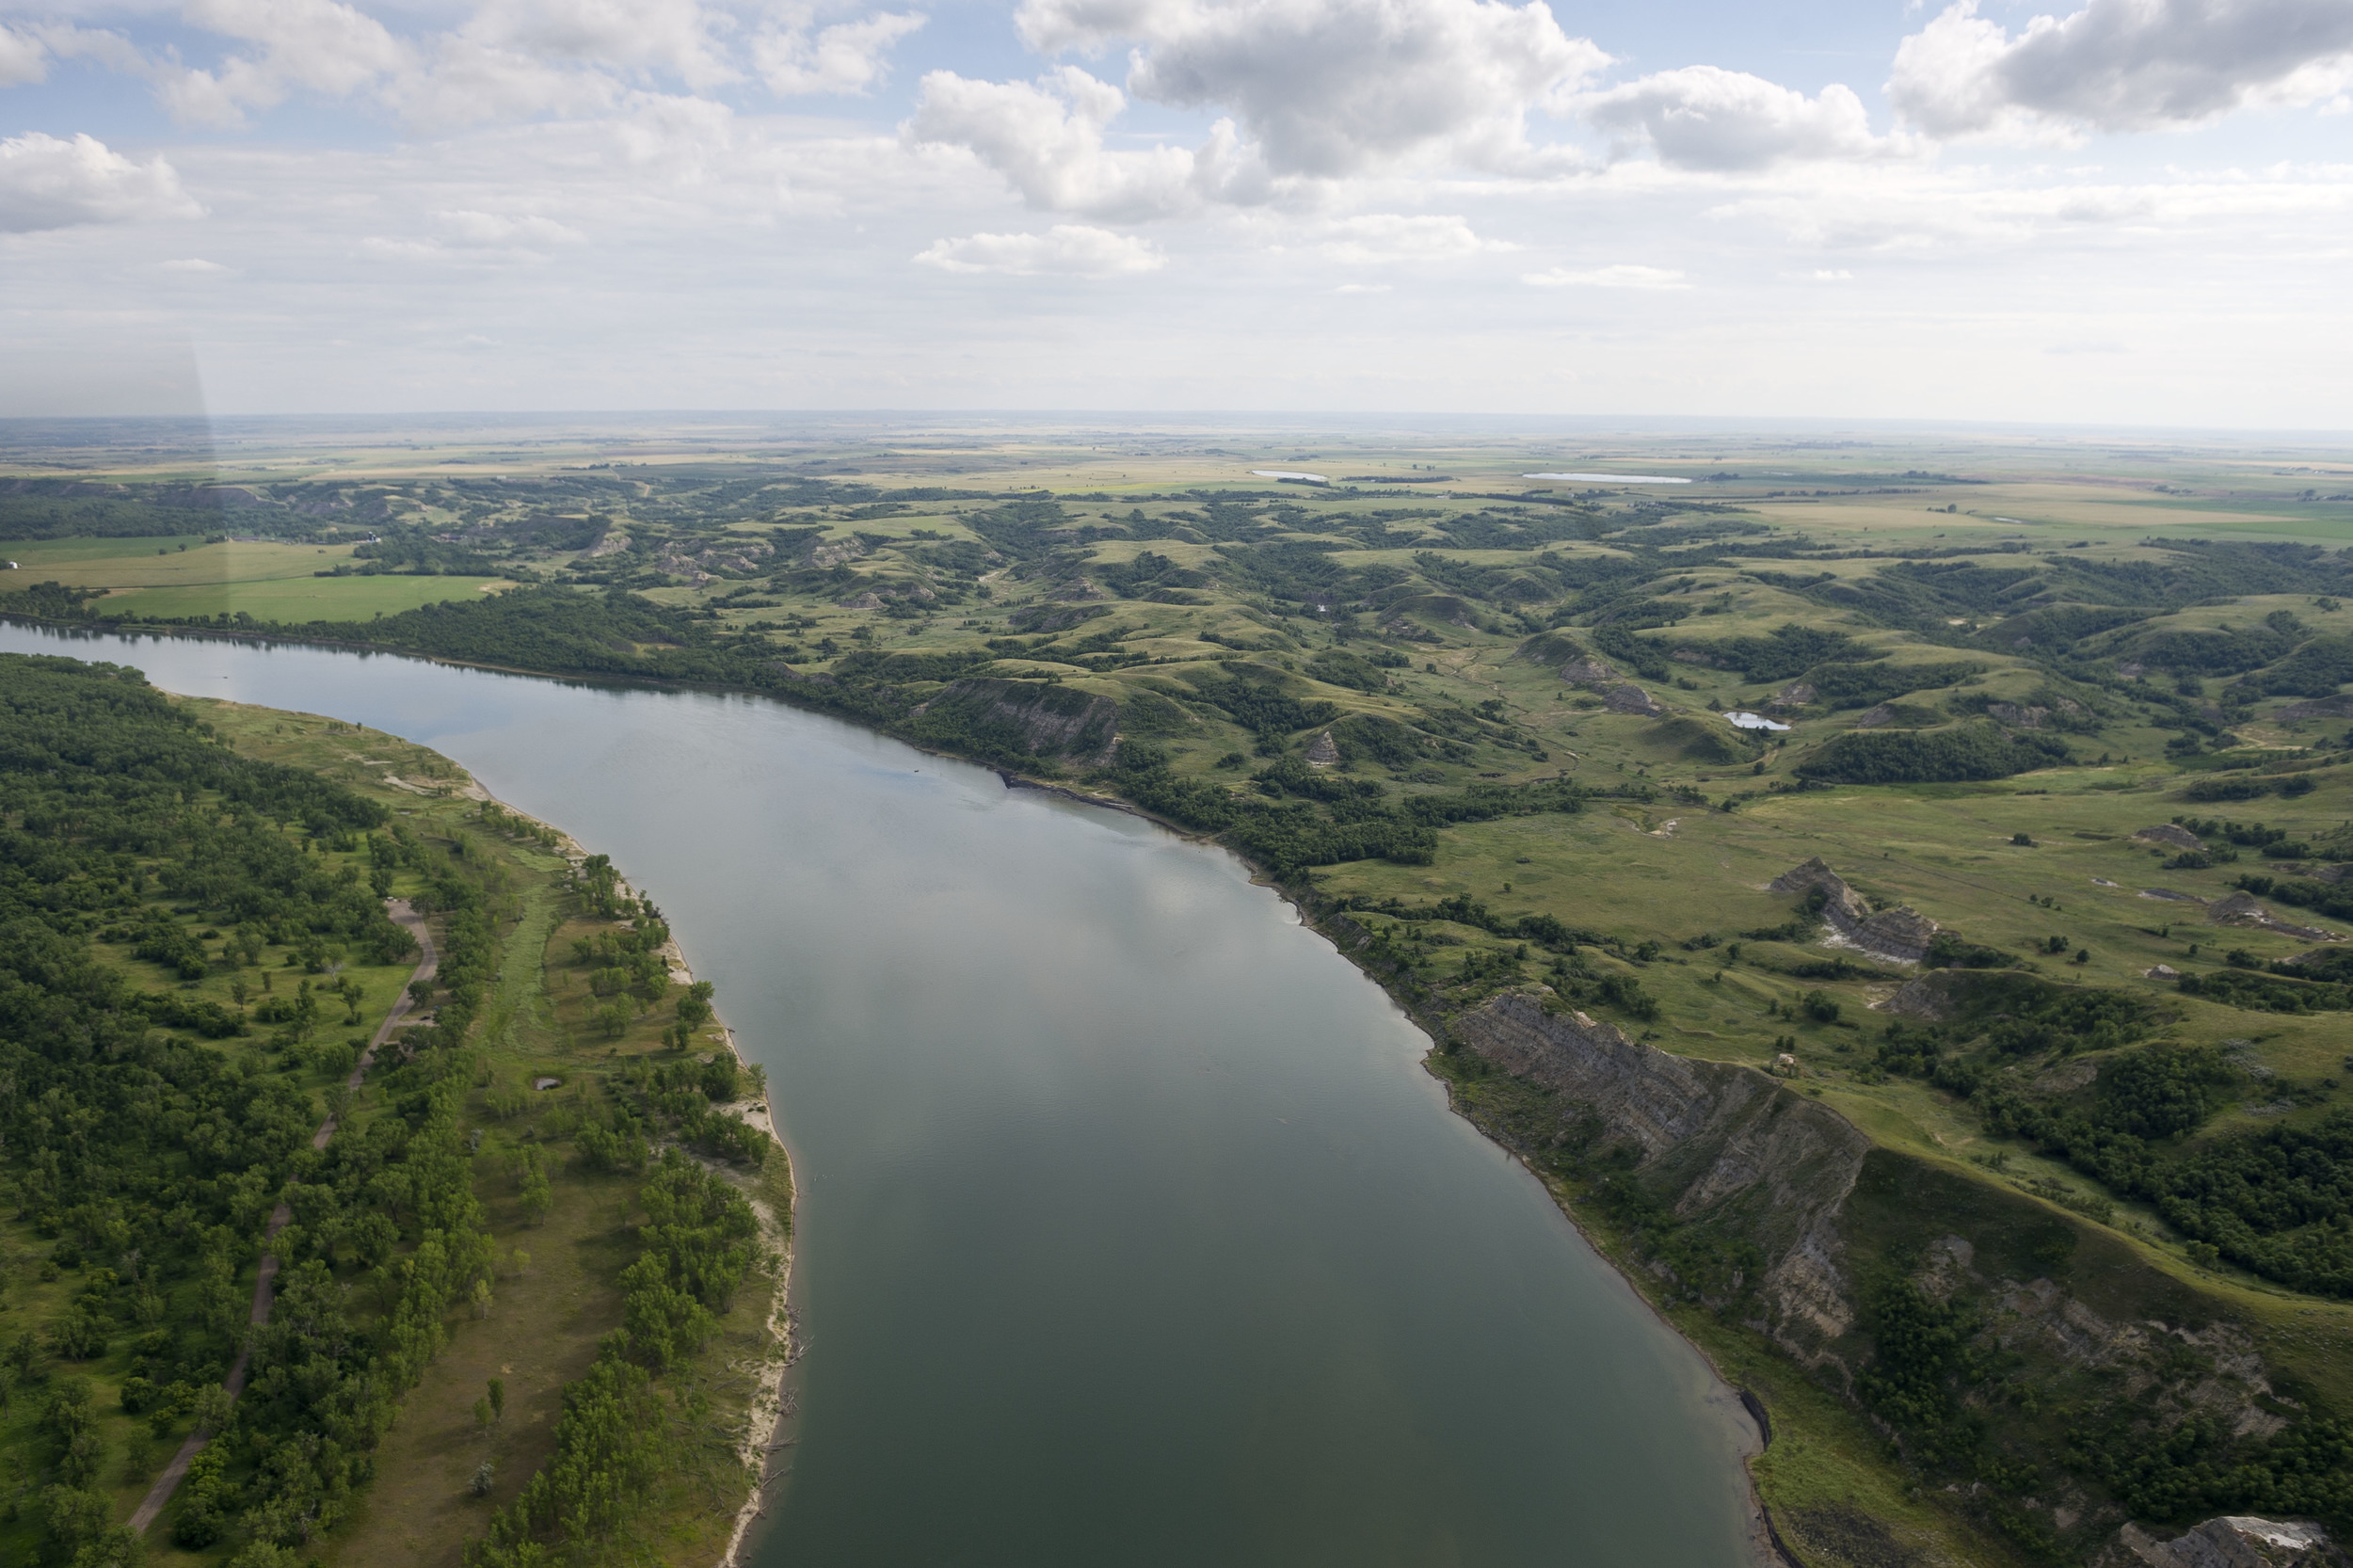 Missouri River, near Lewis and Clarke landing in McLean County, ND.